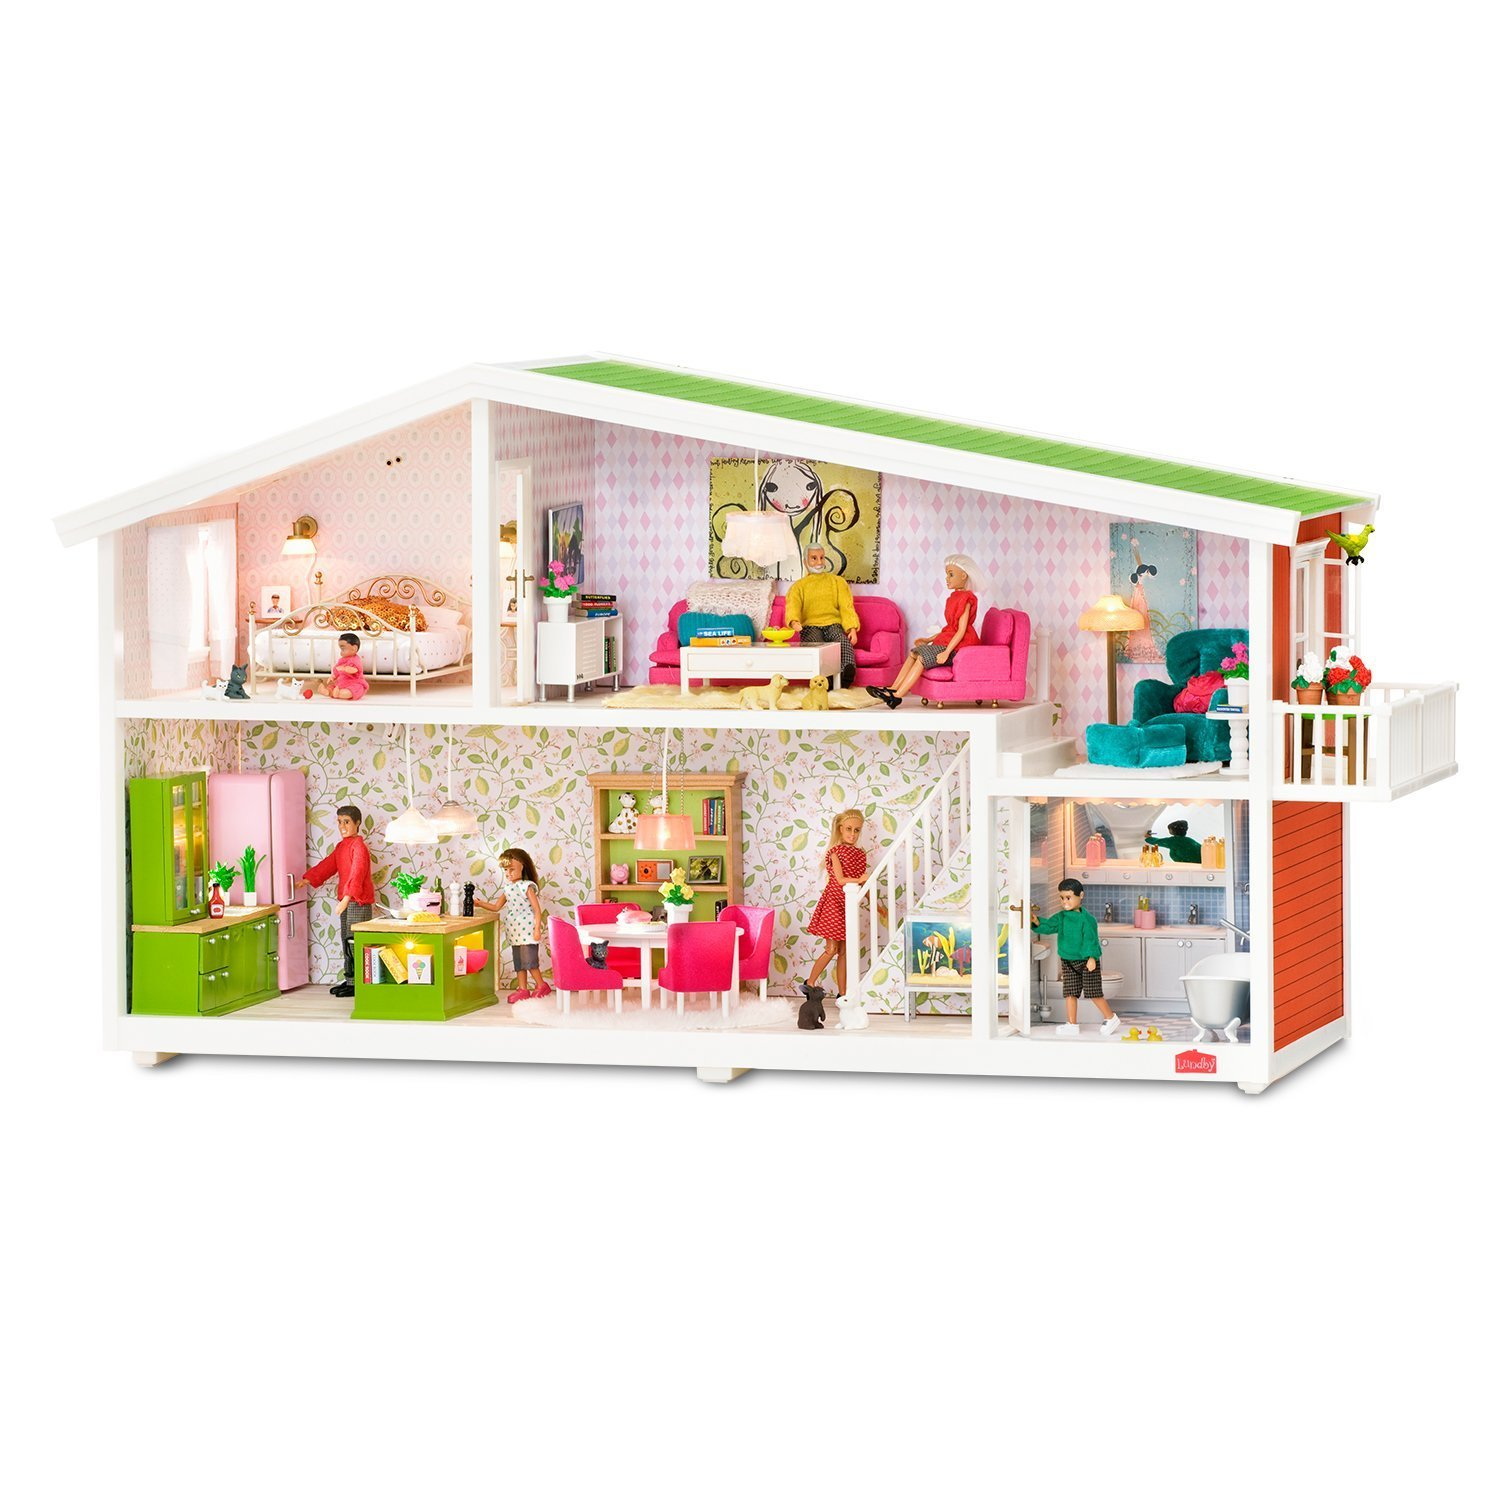 The Dolls House Lundby Smaland Dolls House The Dolls House Boutique